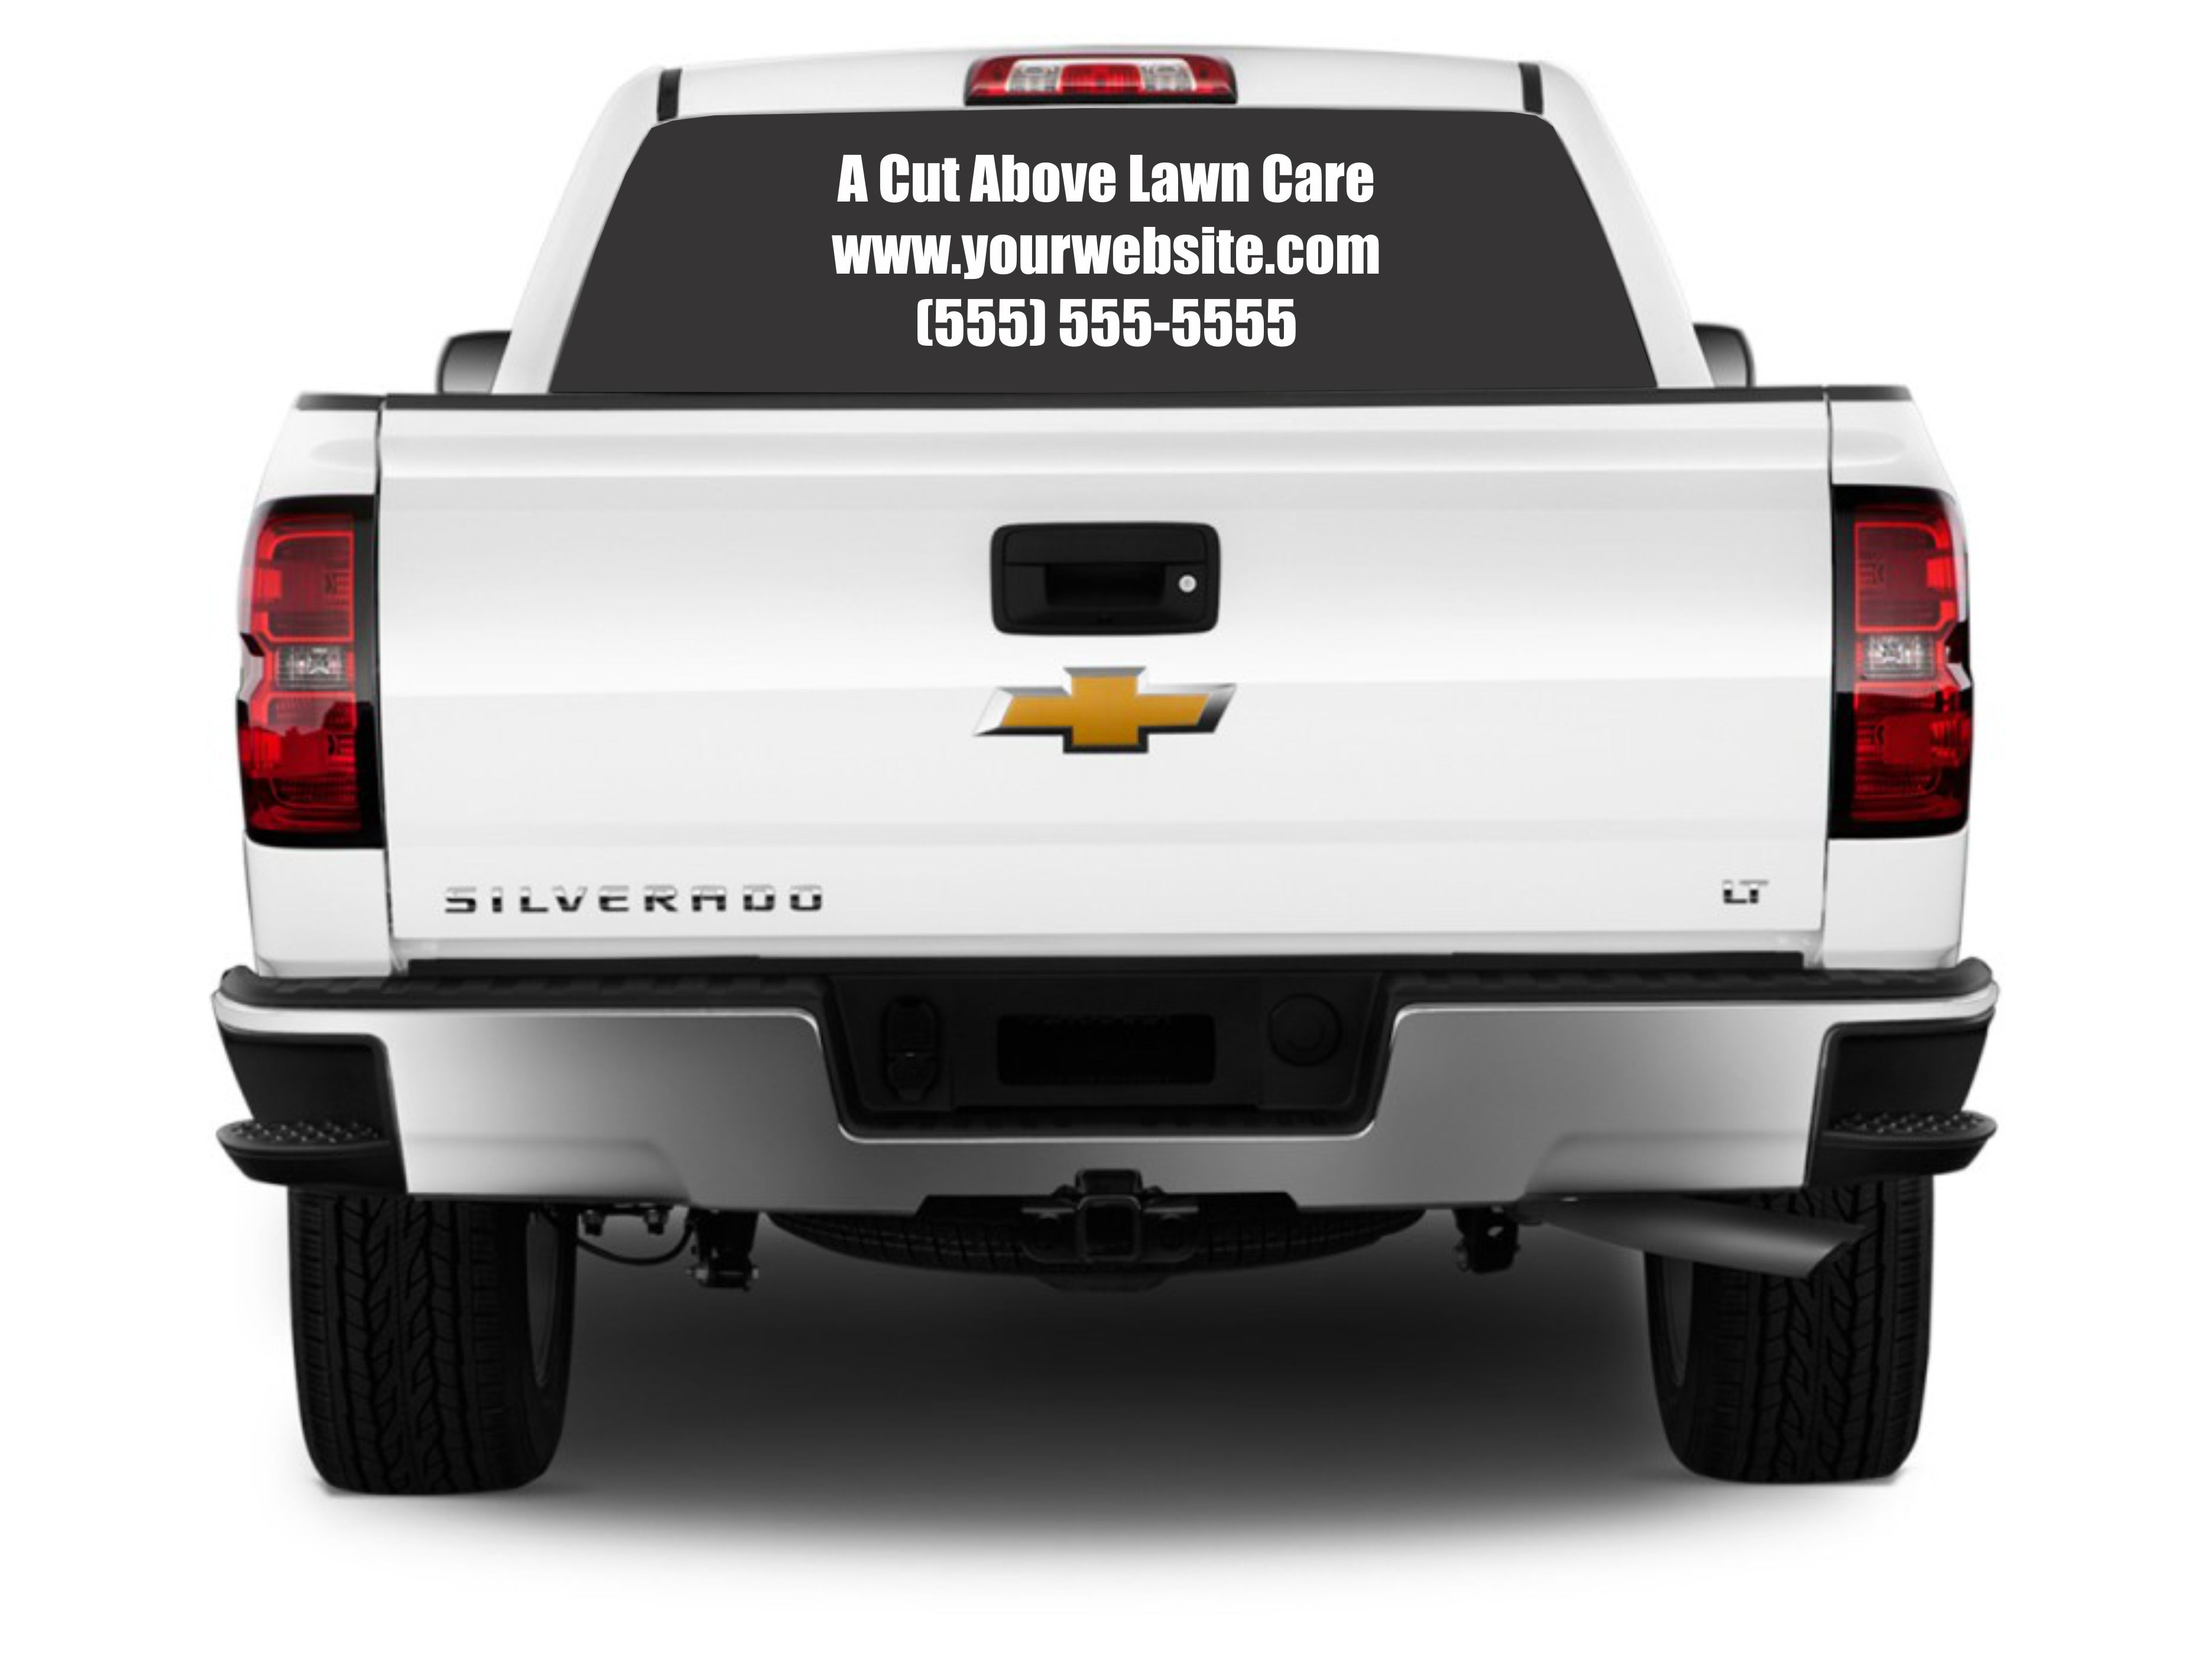 A Cut Above Lawn Care Vinyl Decal Lettering For Lawn Care - Make custom vinyl decals